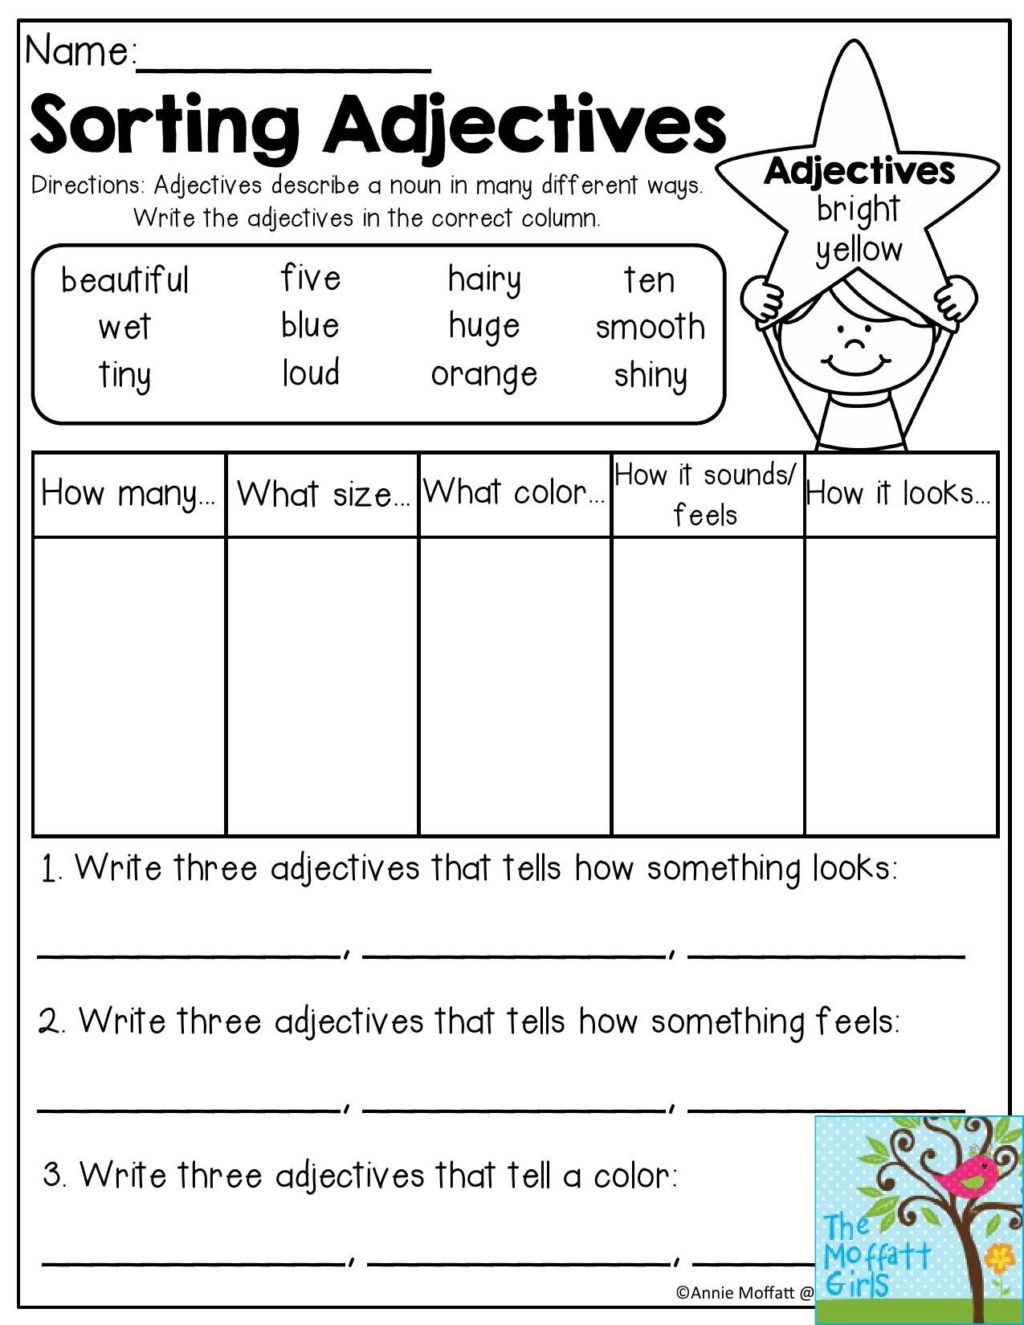 Grammar Worksheets 2nd Grade Printable Worksheet 2nd Grade Grammarorksheets Second to Printable